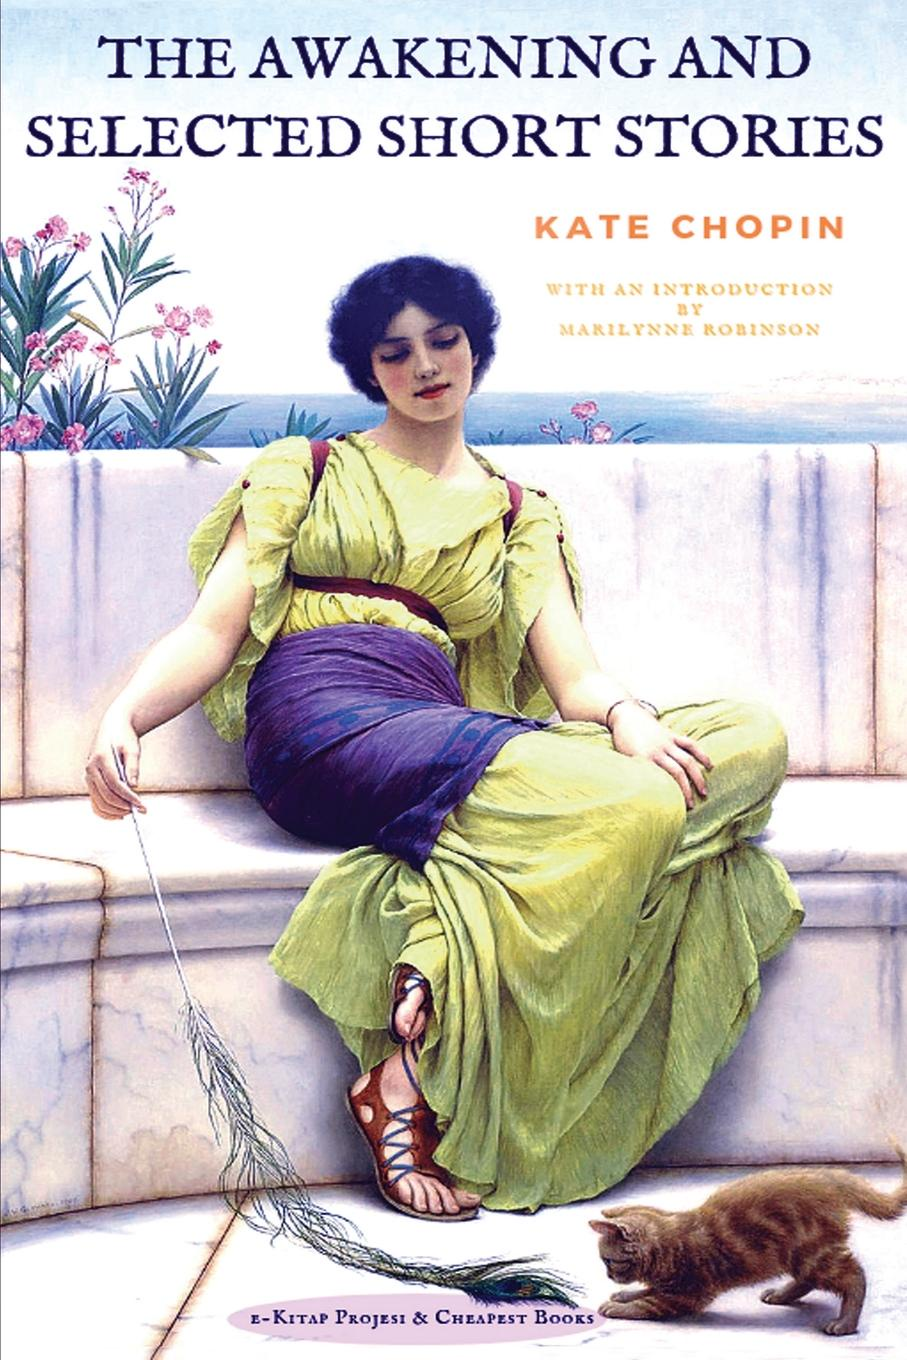 Kate Chopin The Awakening and Selected Short Stories kate chopin the awakening and selected short stories